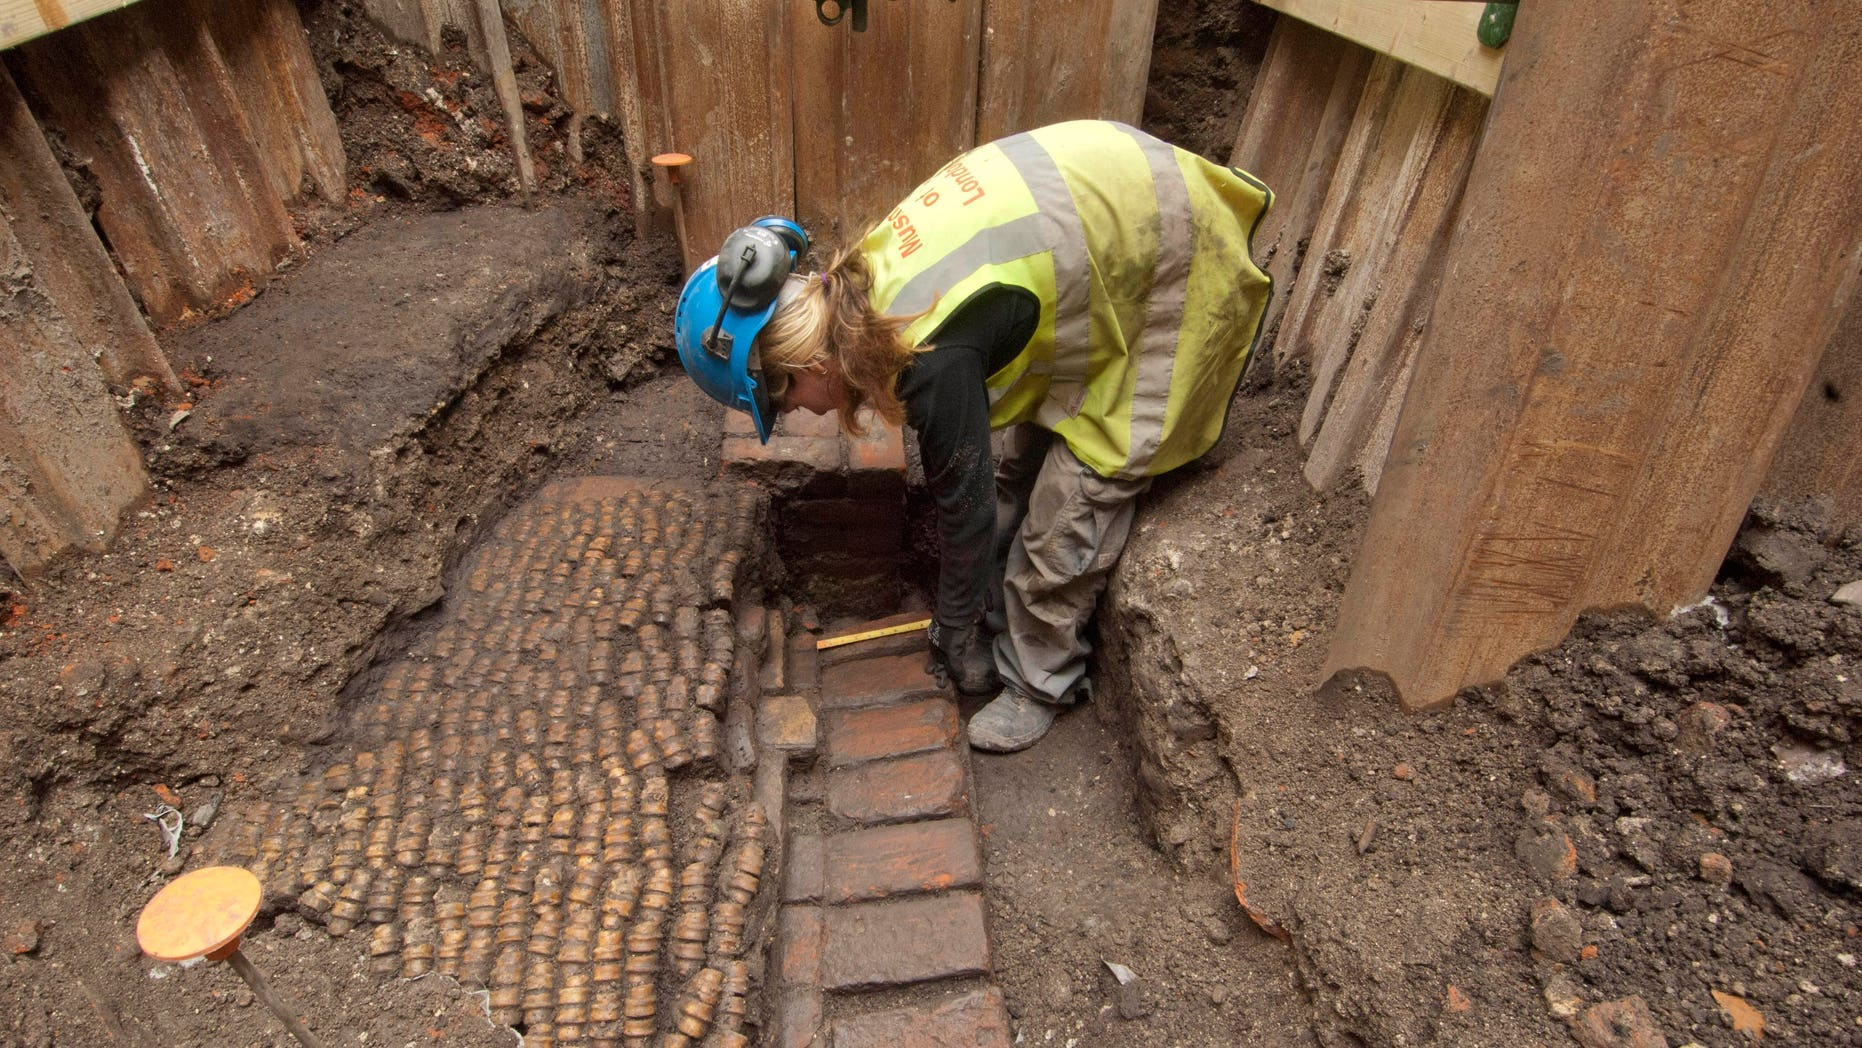 June 6, 2012: An archaeologist undertakes initial excavation work at the site of The Curtain Theatre in London in October 2011.